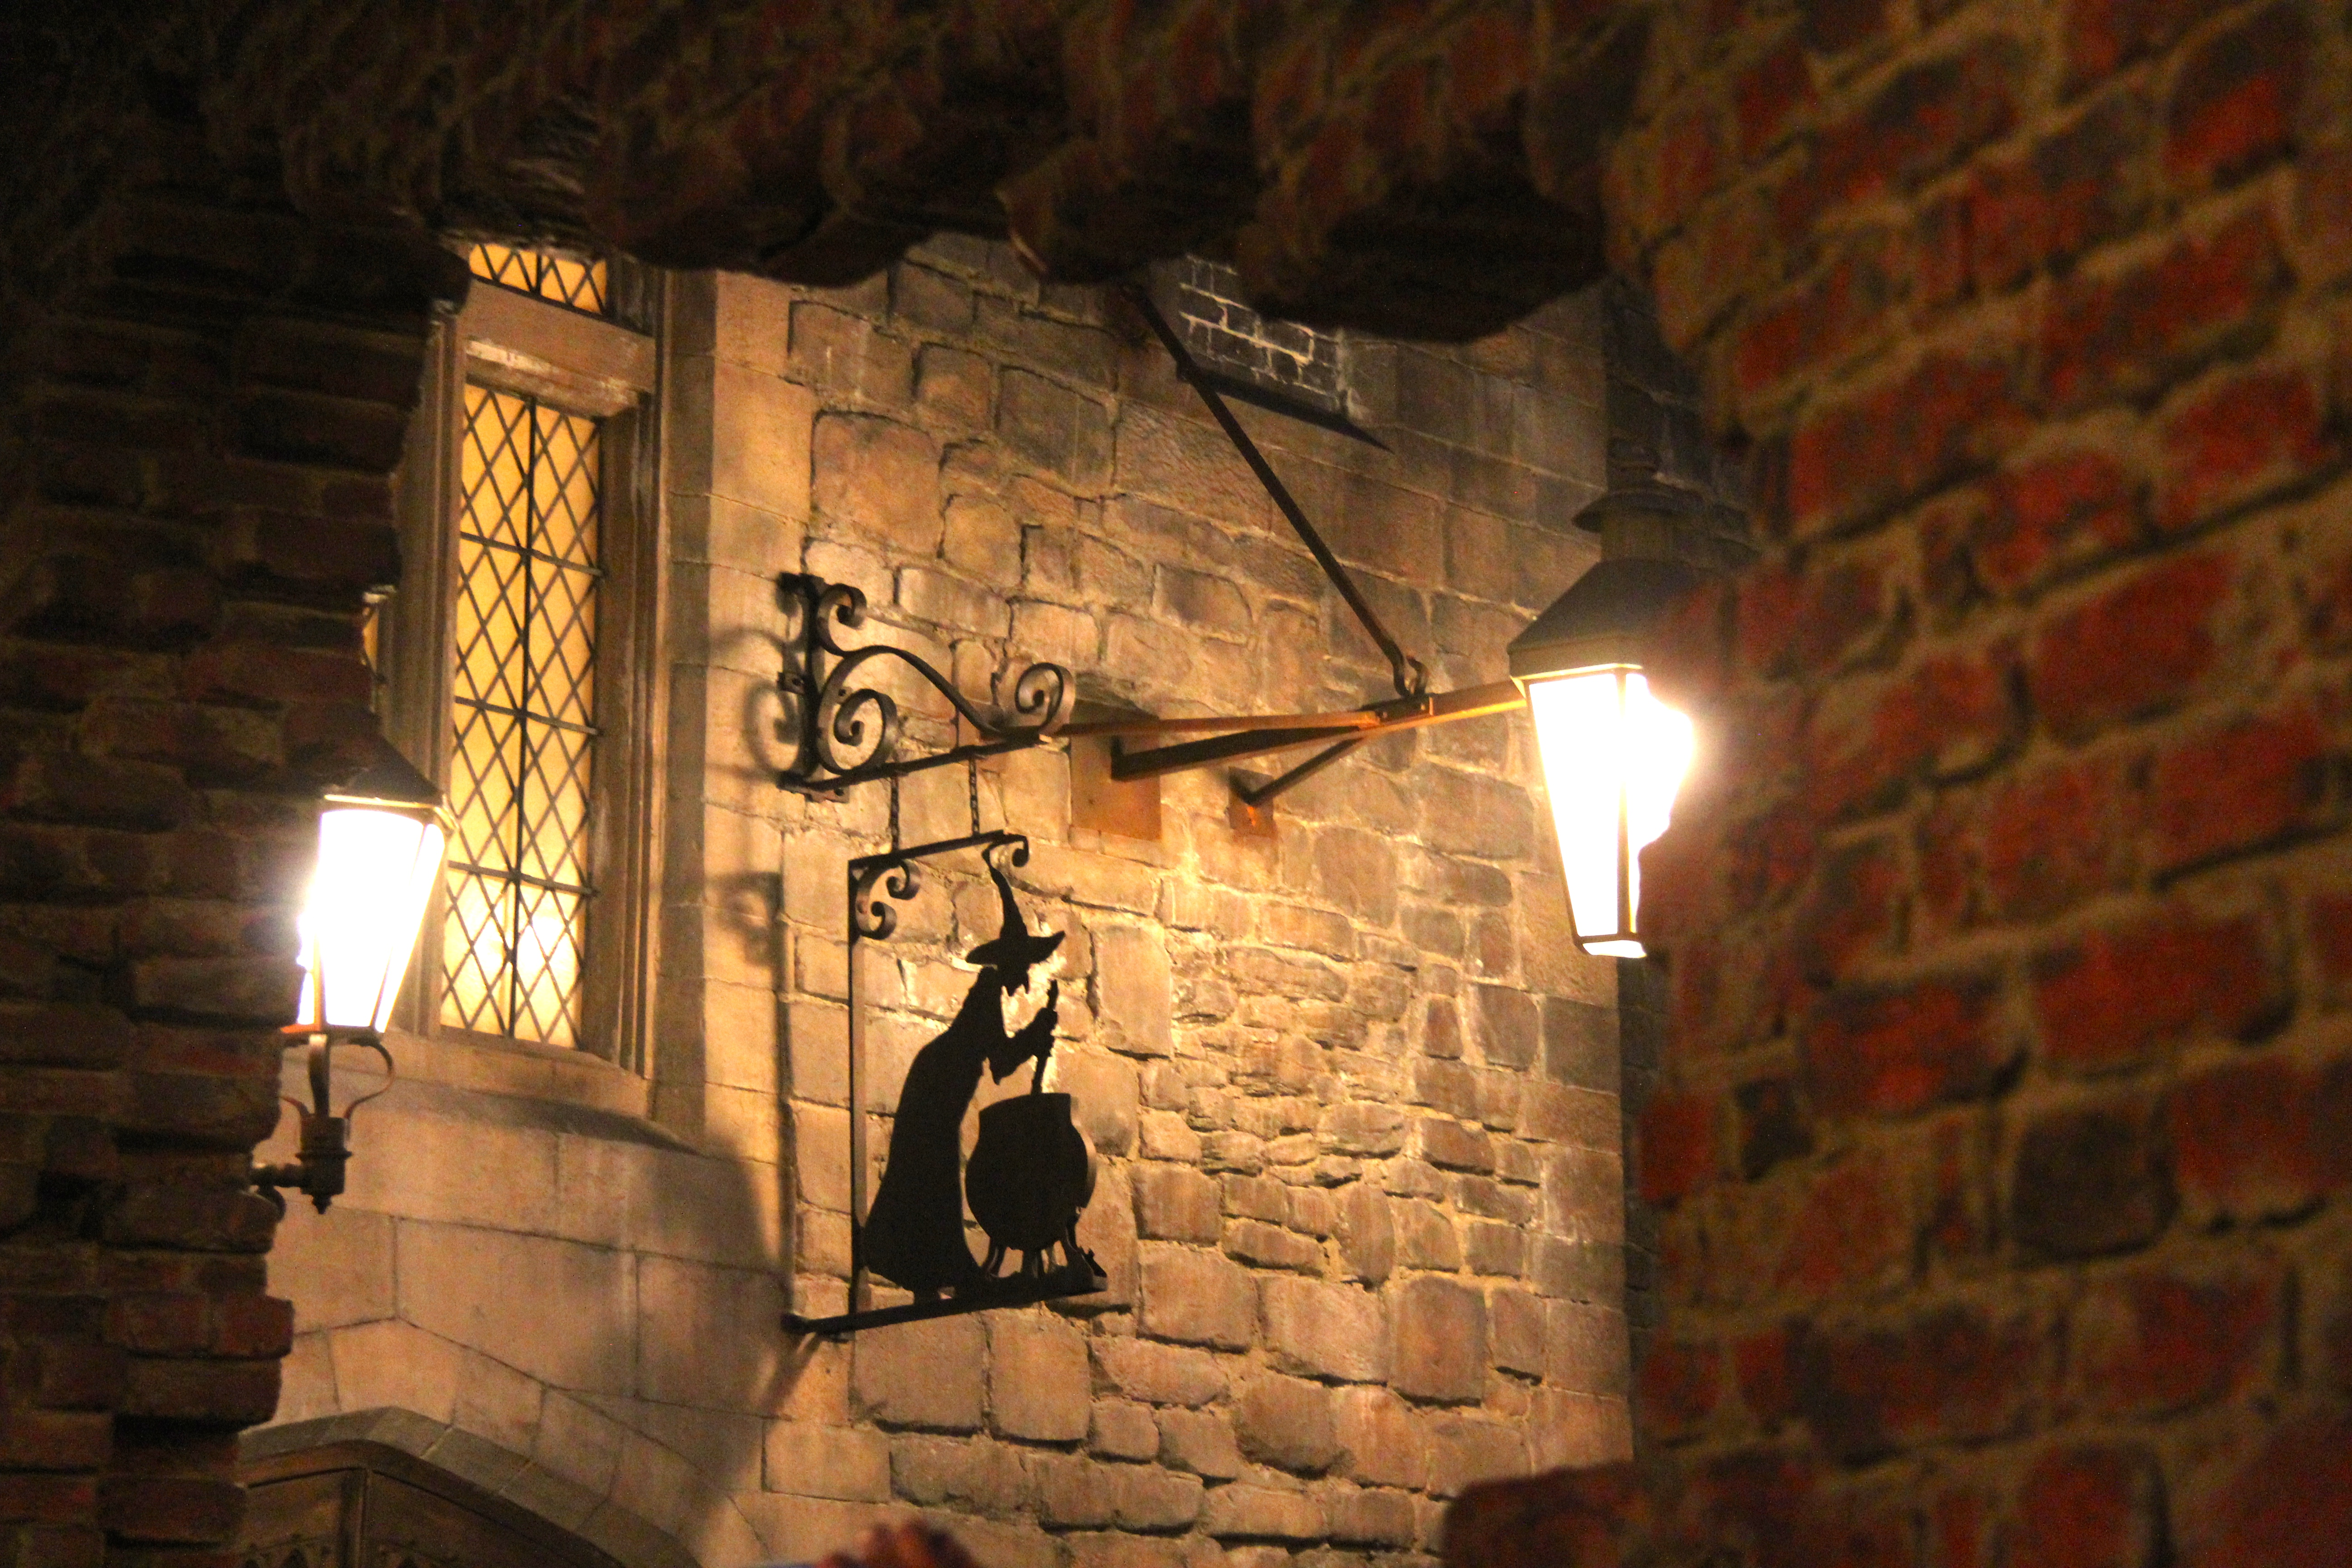 In the harry potter movies the leaky cauldron is a popular wizarding